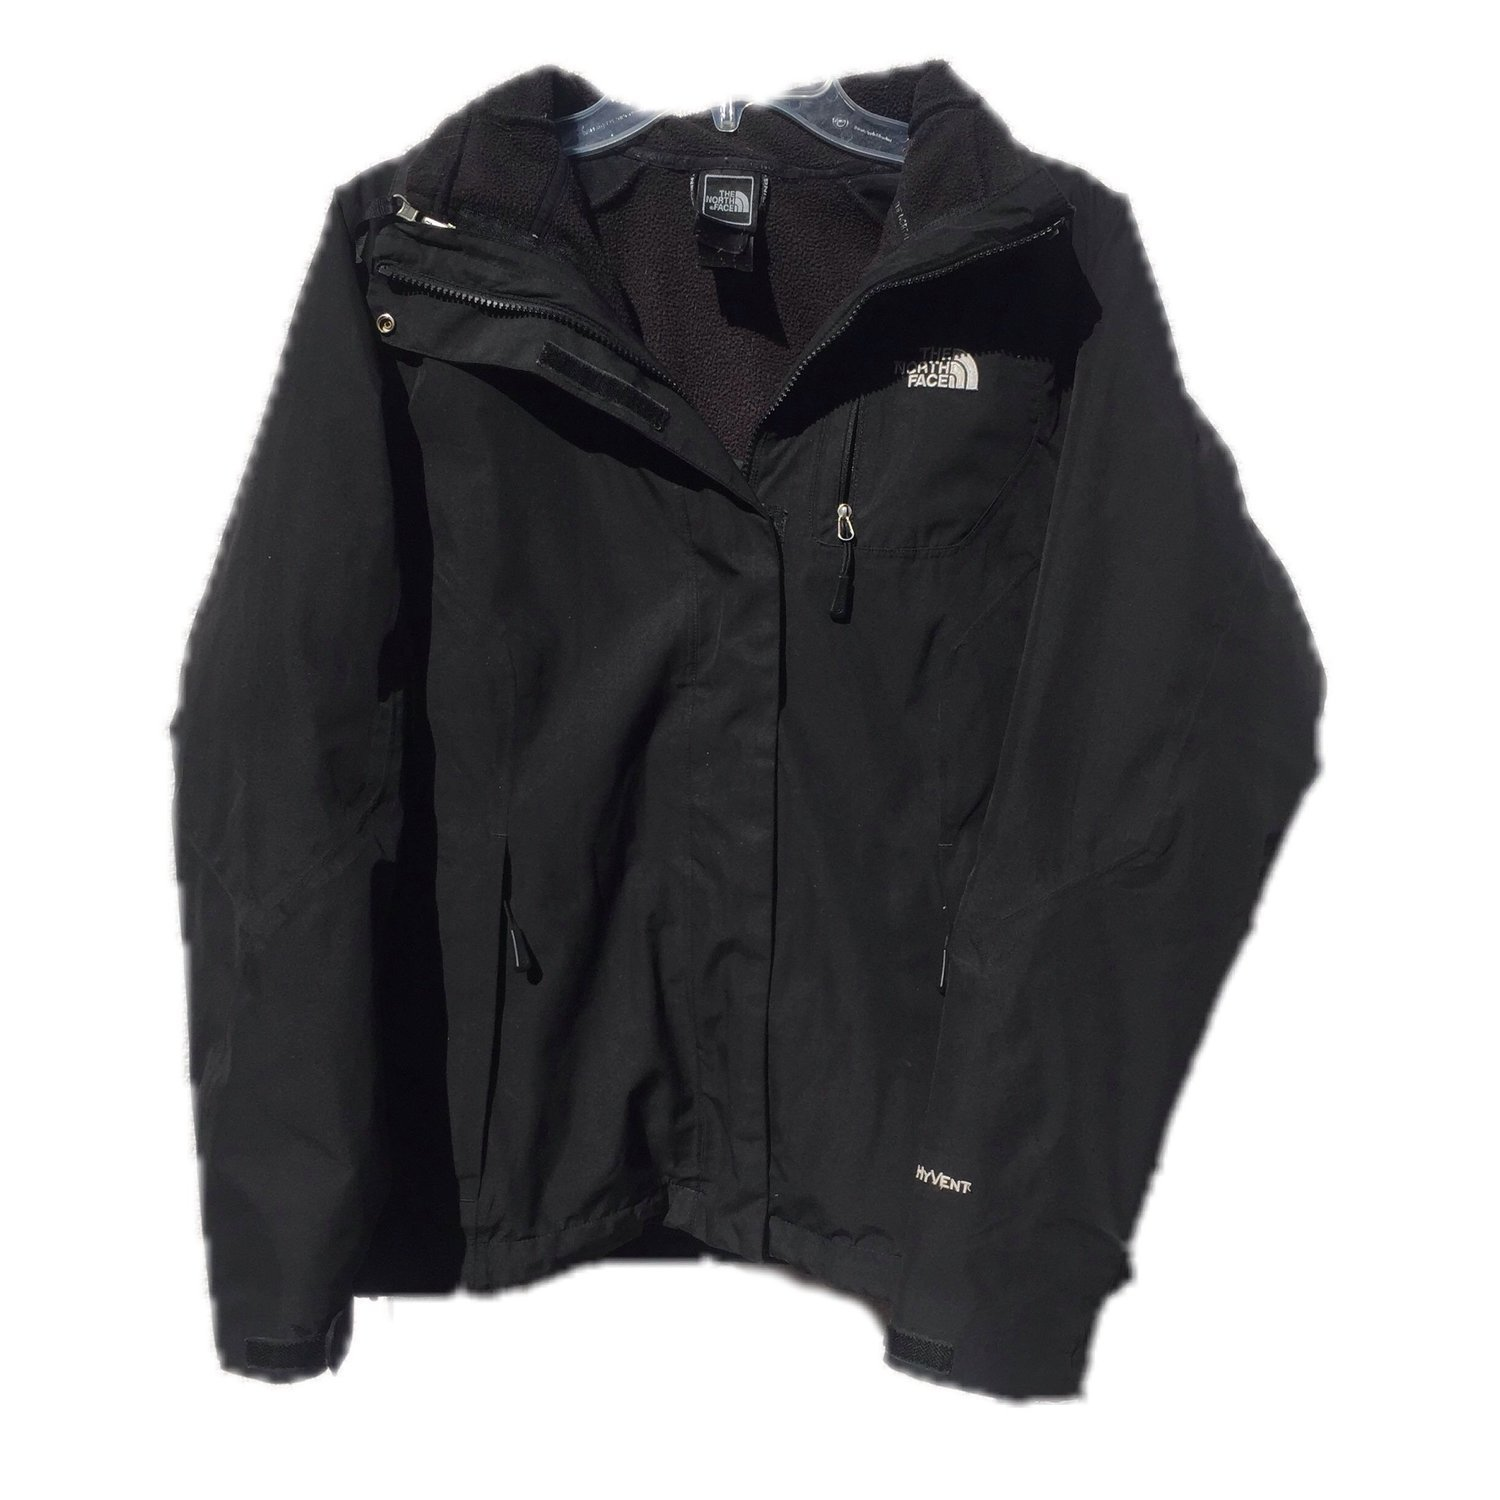 a046e15ea Women's Small The North Face Atlas Triclimate 3-in-1 Jacket